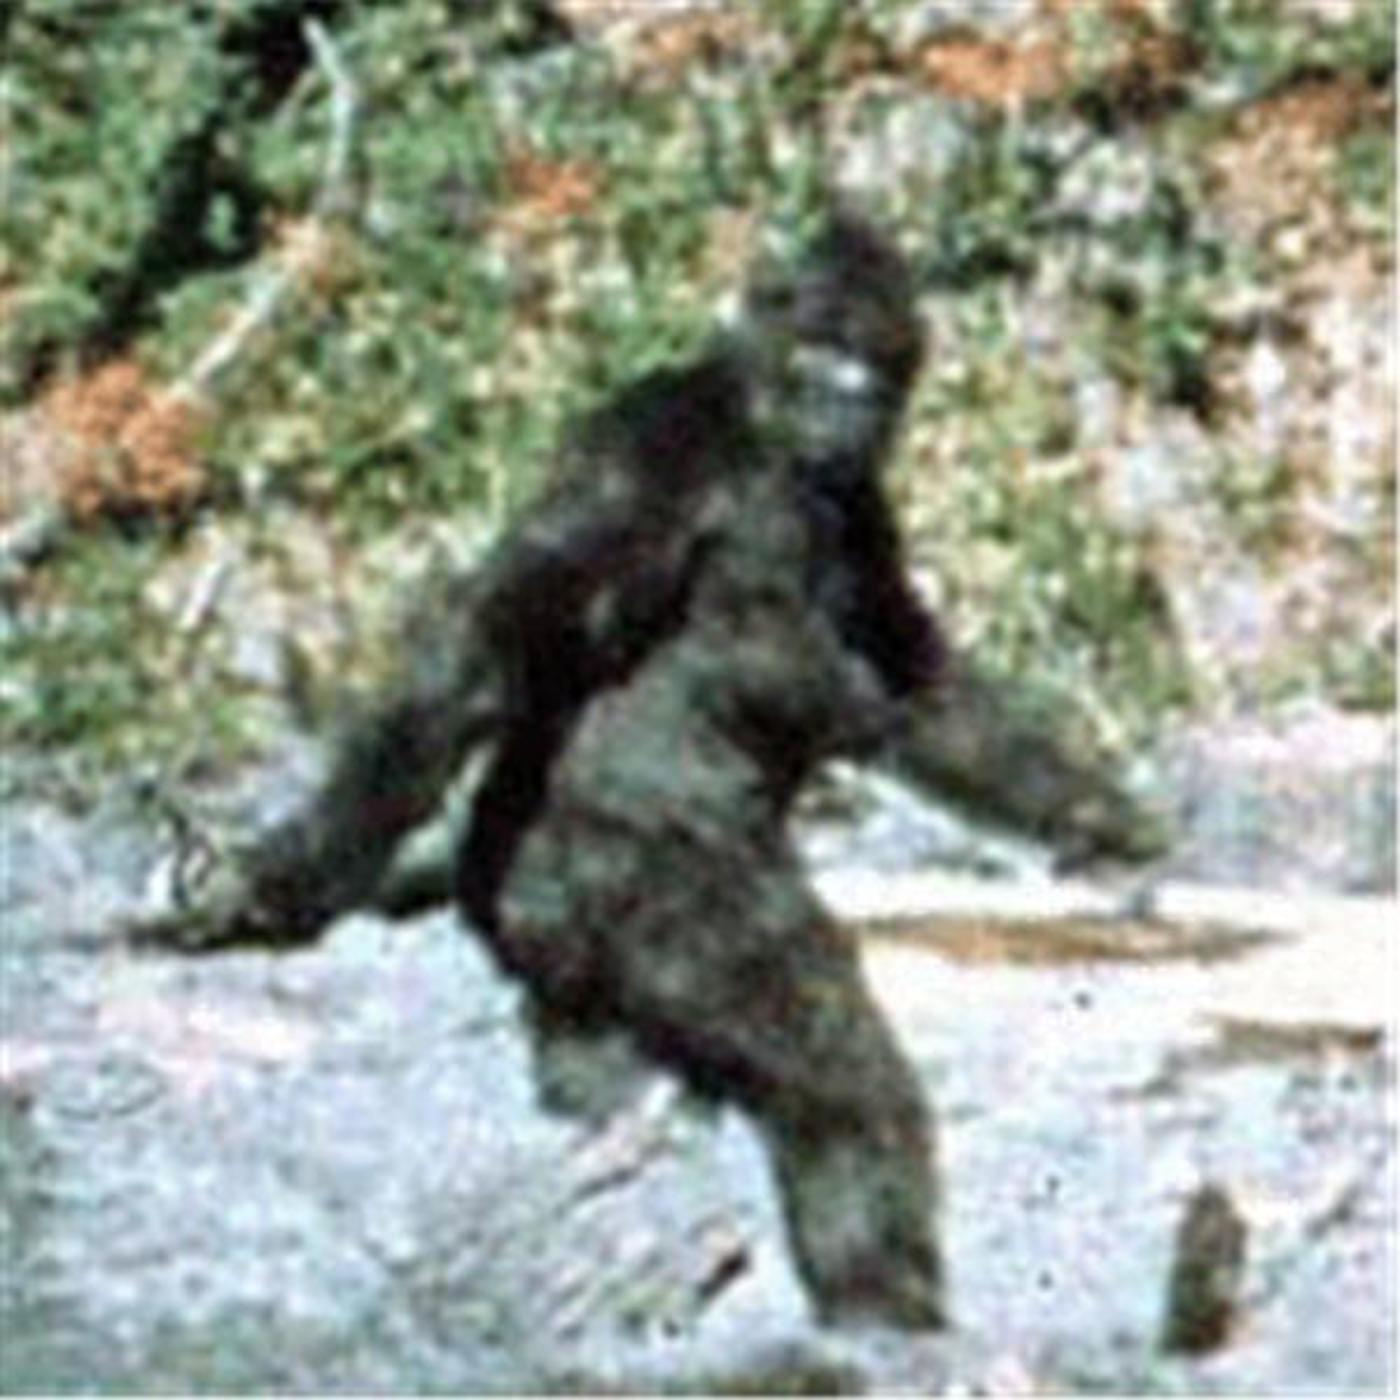 Bigfoot Ground Zero - Sasquatch the Target Subject